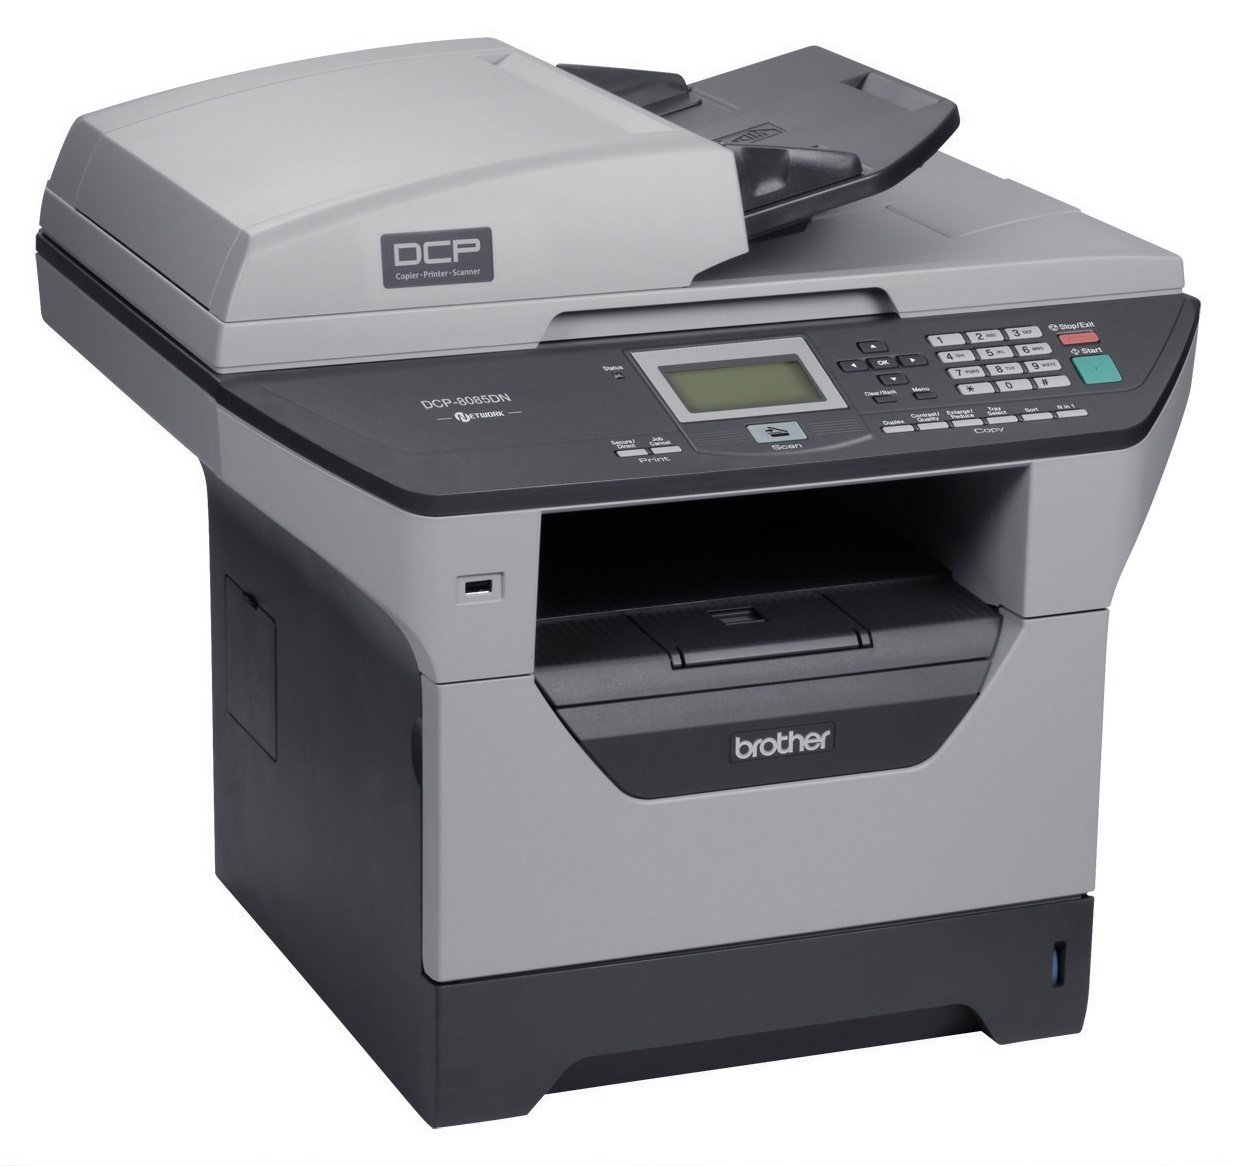 BROTHER DCP-8080DN PRINTER DRIVER FOR WINDOWS MAC